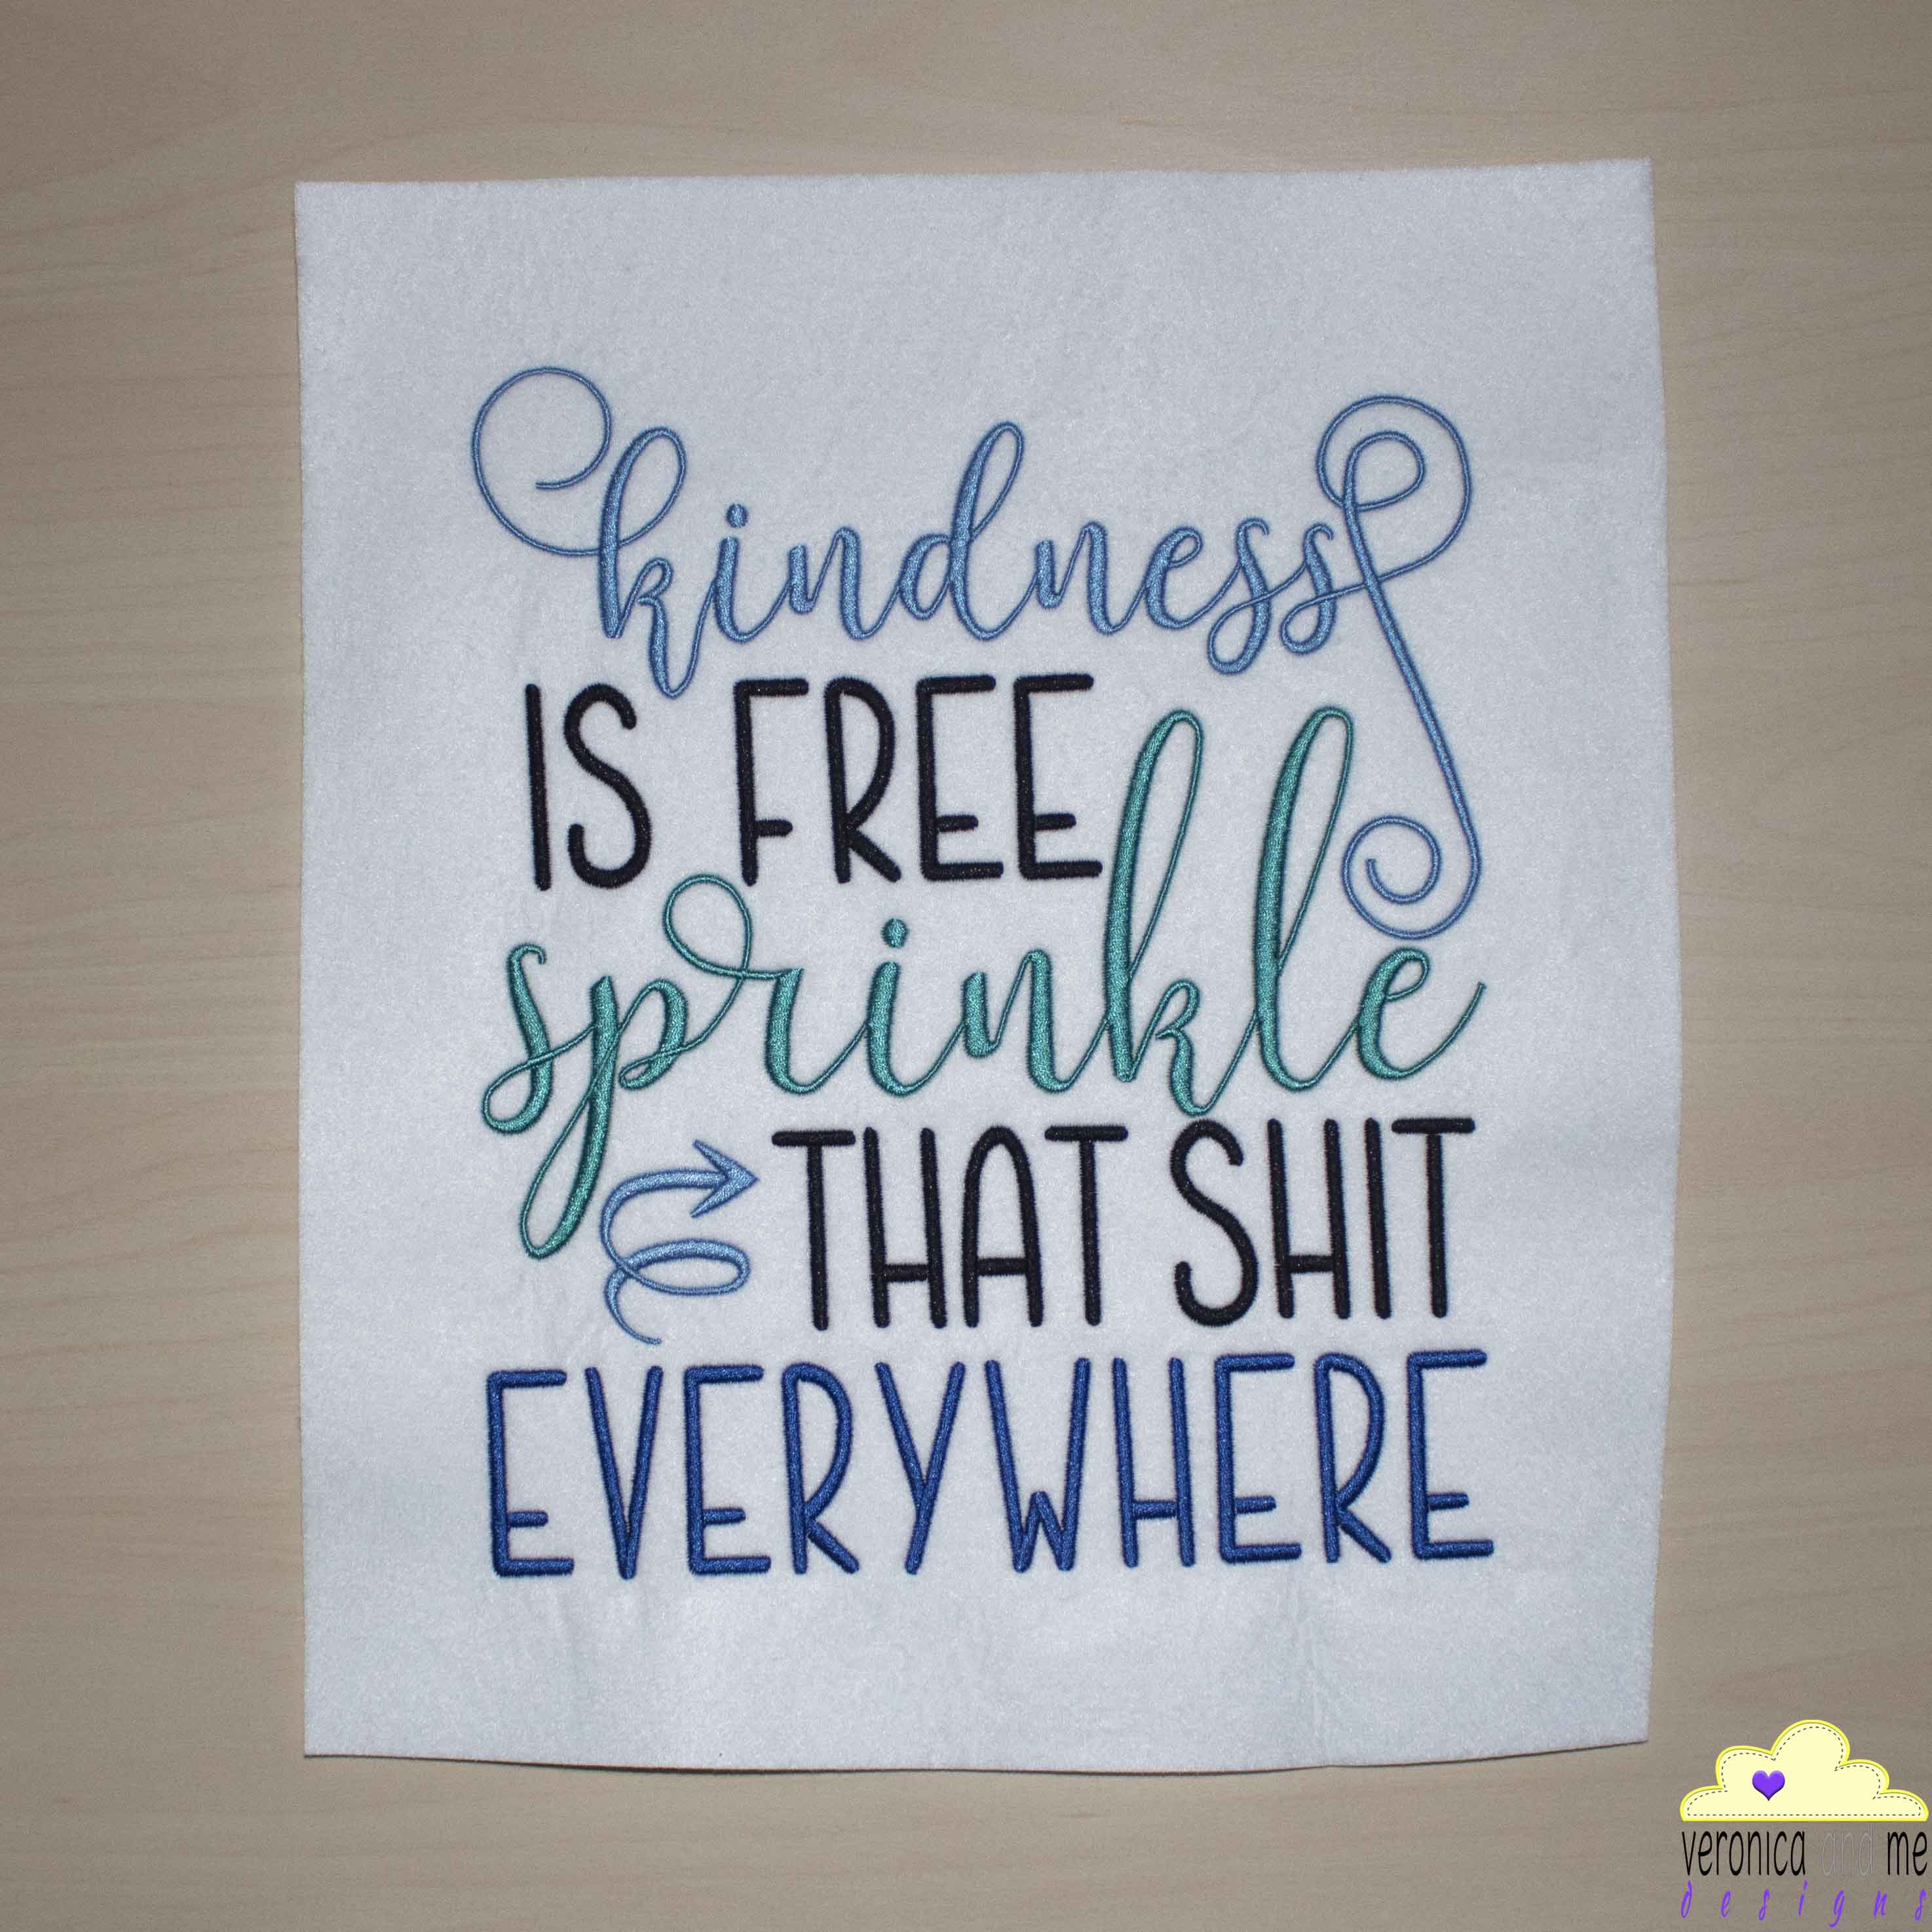 Kindness Is Free Sprinkle That Shit Everywhere Embroidery Design Embroidery Digitizing Embroidery Designs Digitizing Services